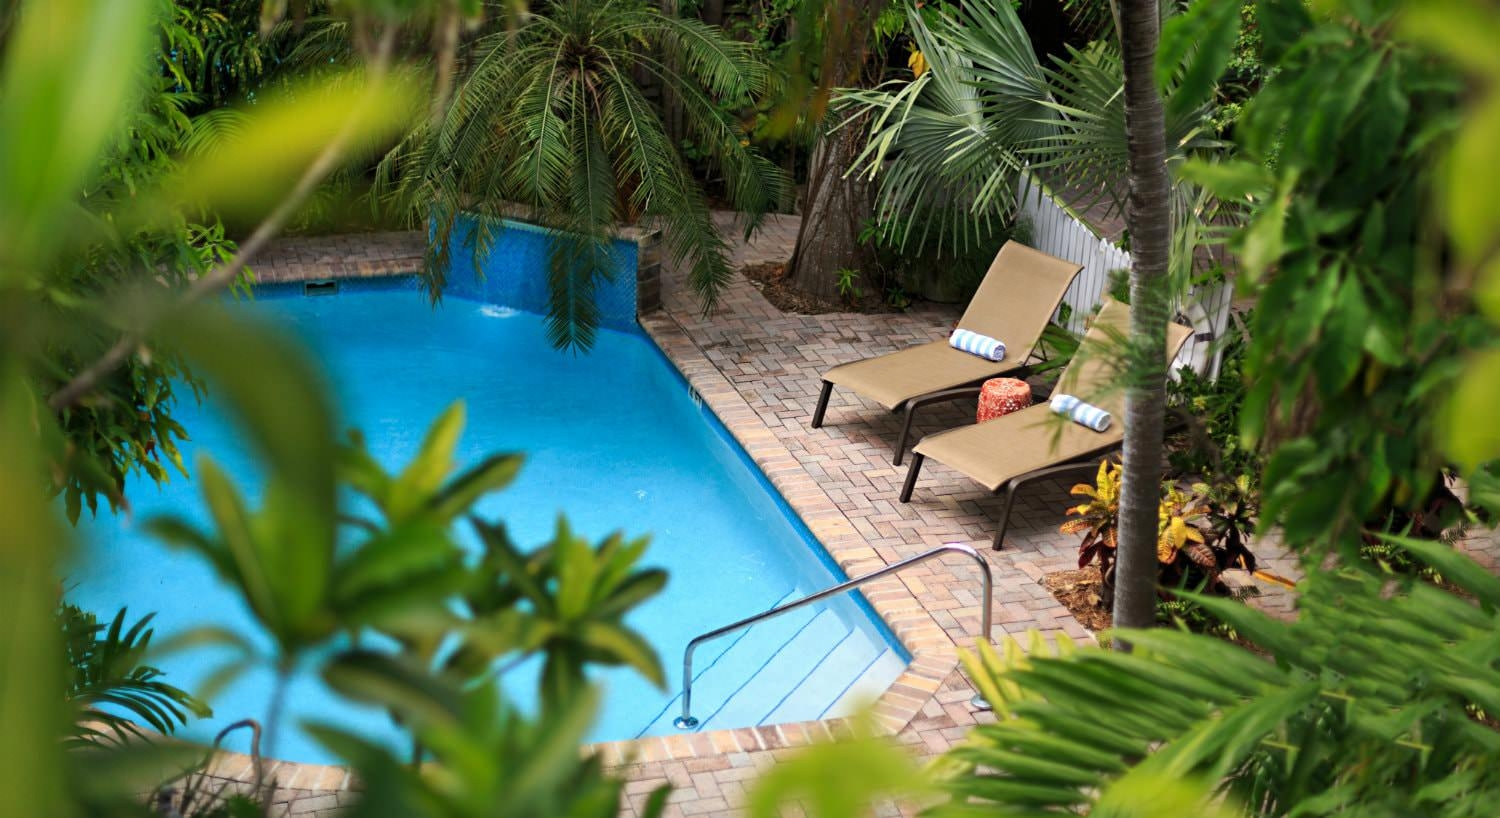 Diamond shaped pool with brown lounge chairs with blue and white towels surrounded by lush greenery